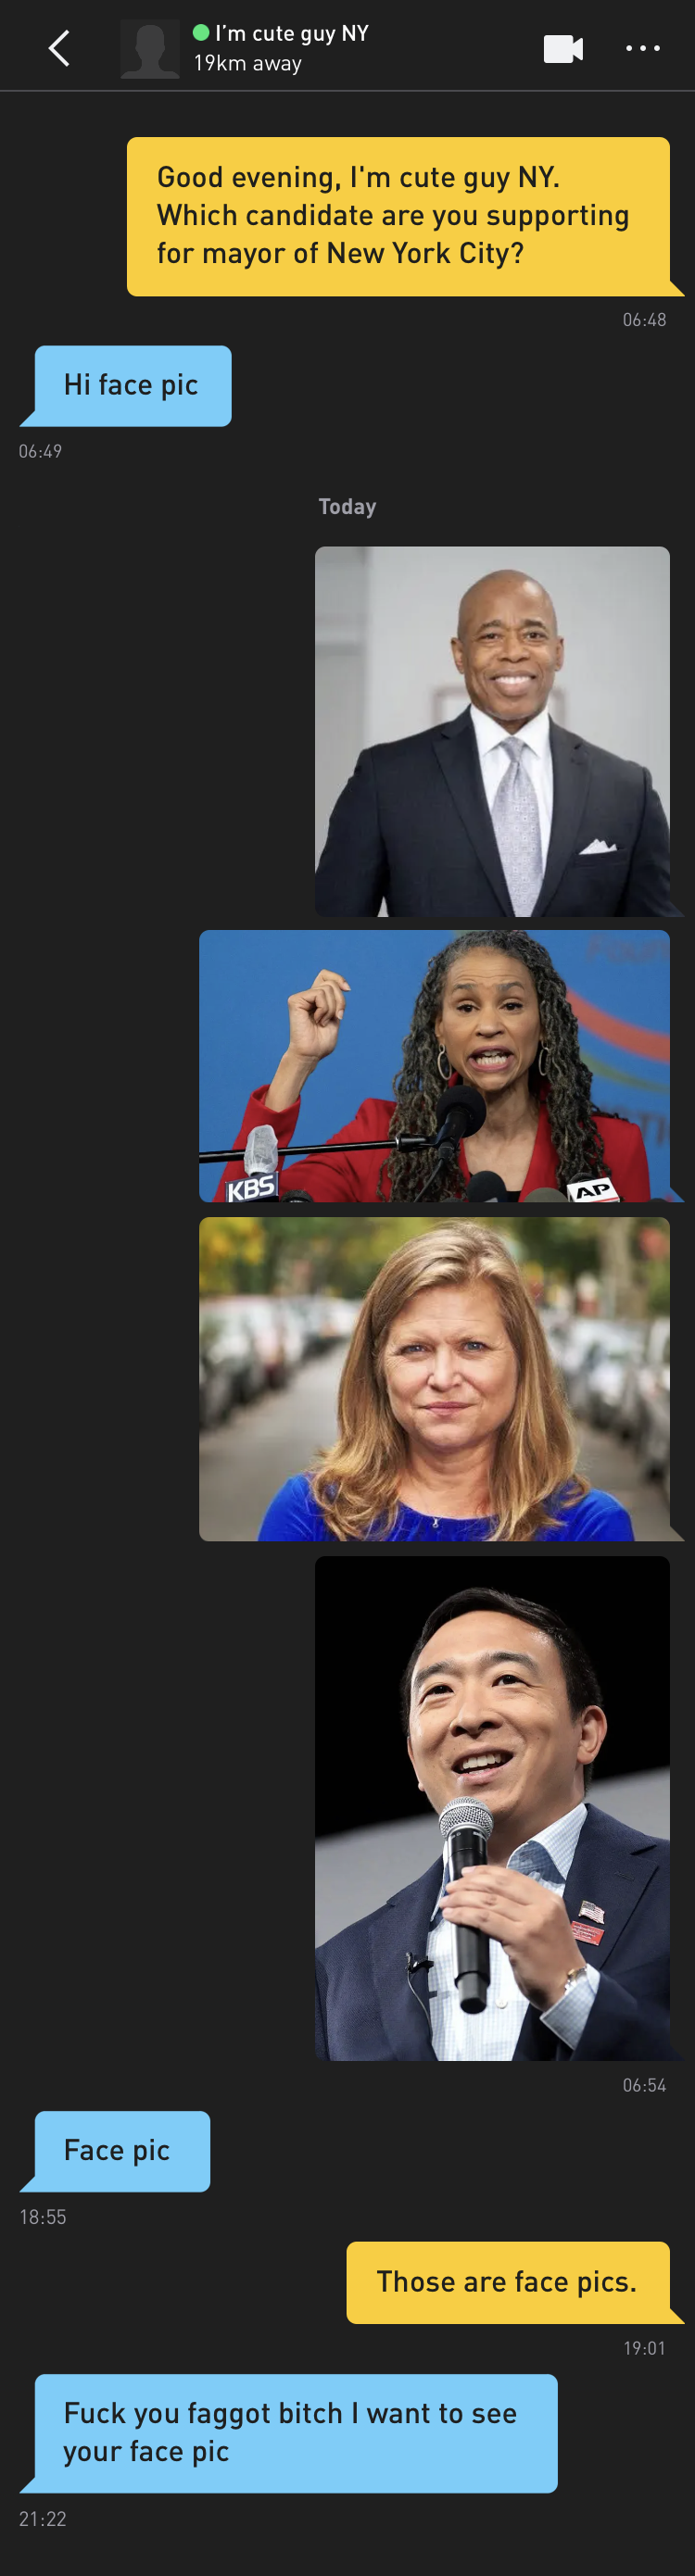 Me: Good evening, I'm cute guy NY. Which candidate are you supporting for mayor of New York City? I'm cute guy NY: Hi face pic Me: [photos of candidates Eric Adams, Maya Wiley, Kathryn Garcia, and Andrew Yang] I'm cute guy NY: Face pic Me: Those are face pics I'm cute guy NY: Fuck you faggot bitch I want to see your face pic